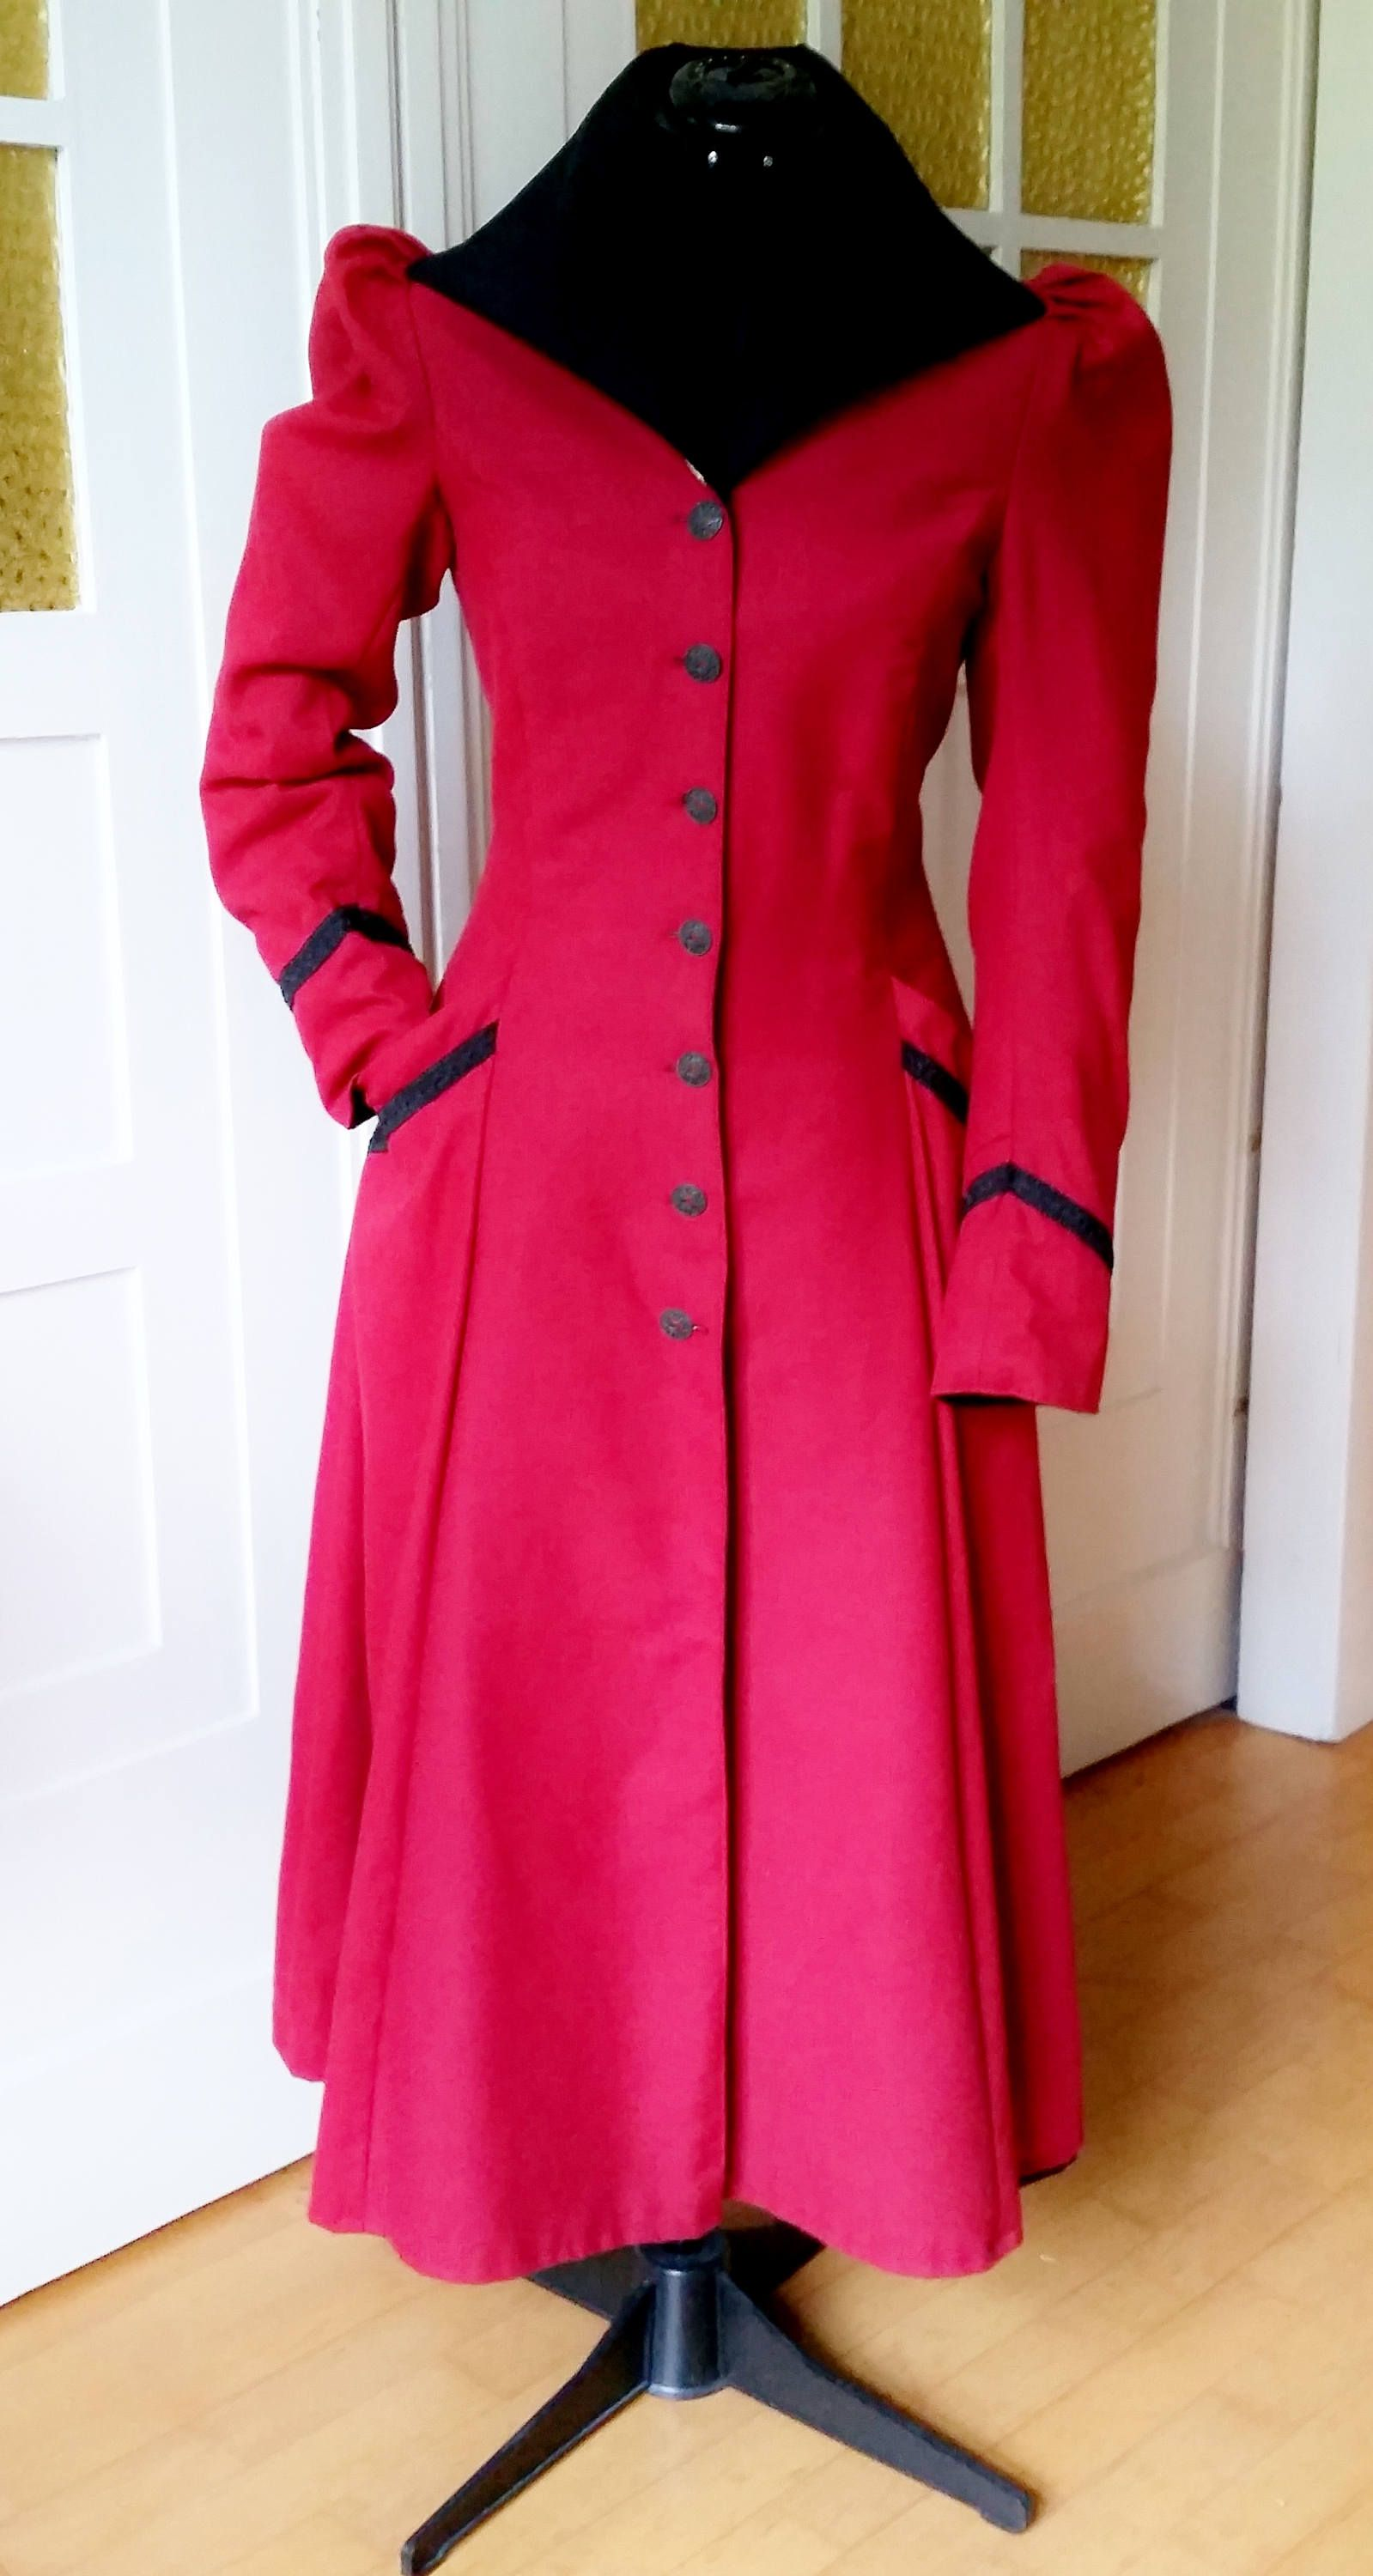 Creations Own 2in1 UniqueMy Coat Steampunk Absolutely FKcTl1J3